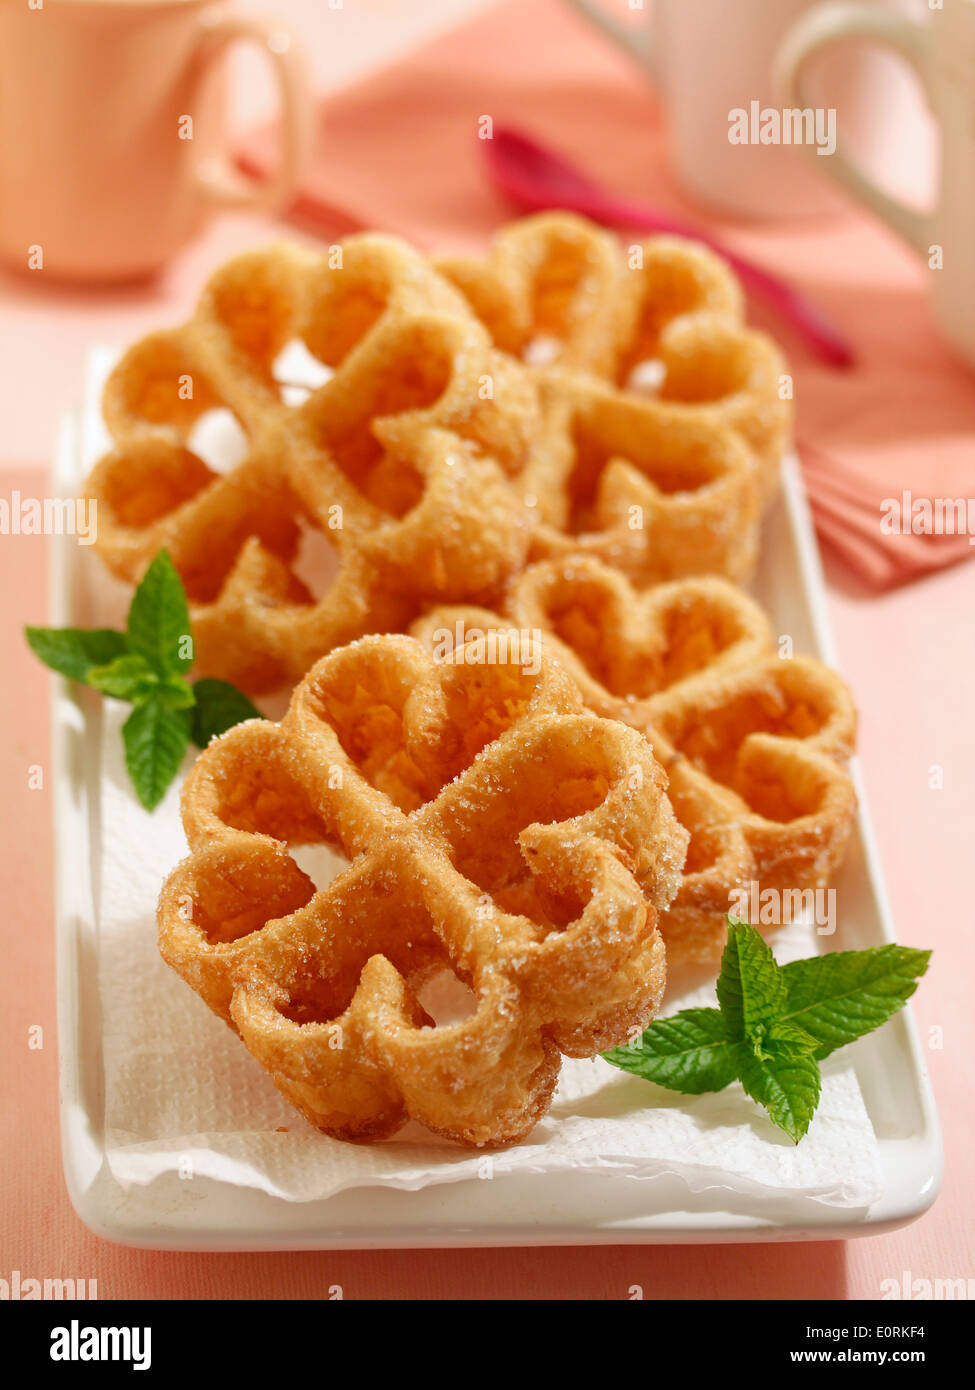 Spanish dessert stock photos spanish dessert stock images alamy typical spanish desserts recipe available stock image forumfinder Image collections